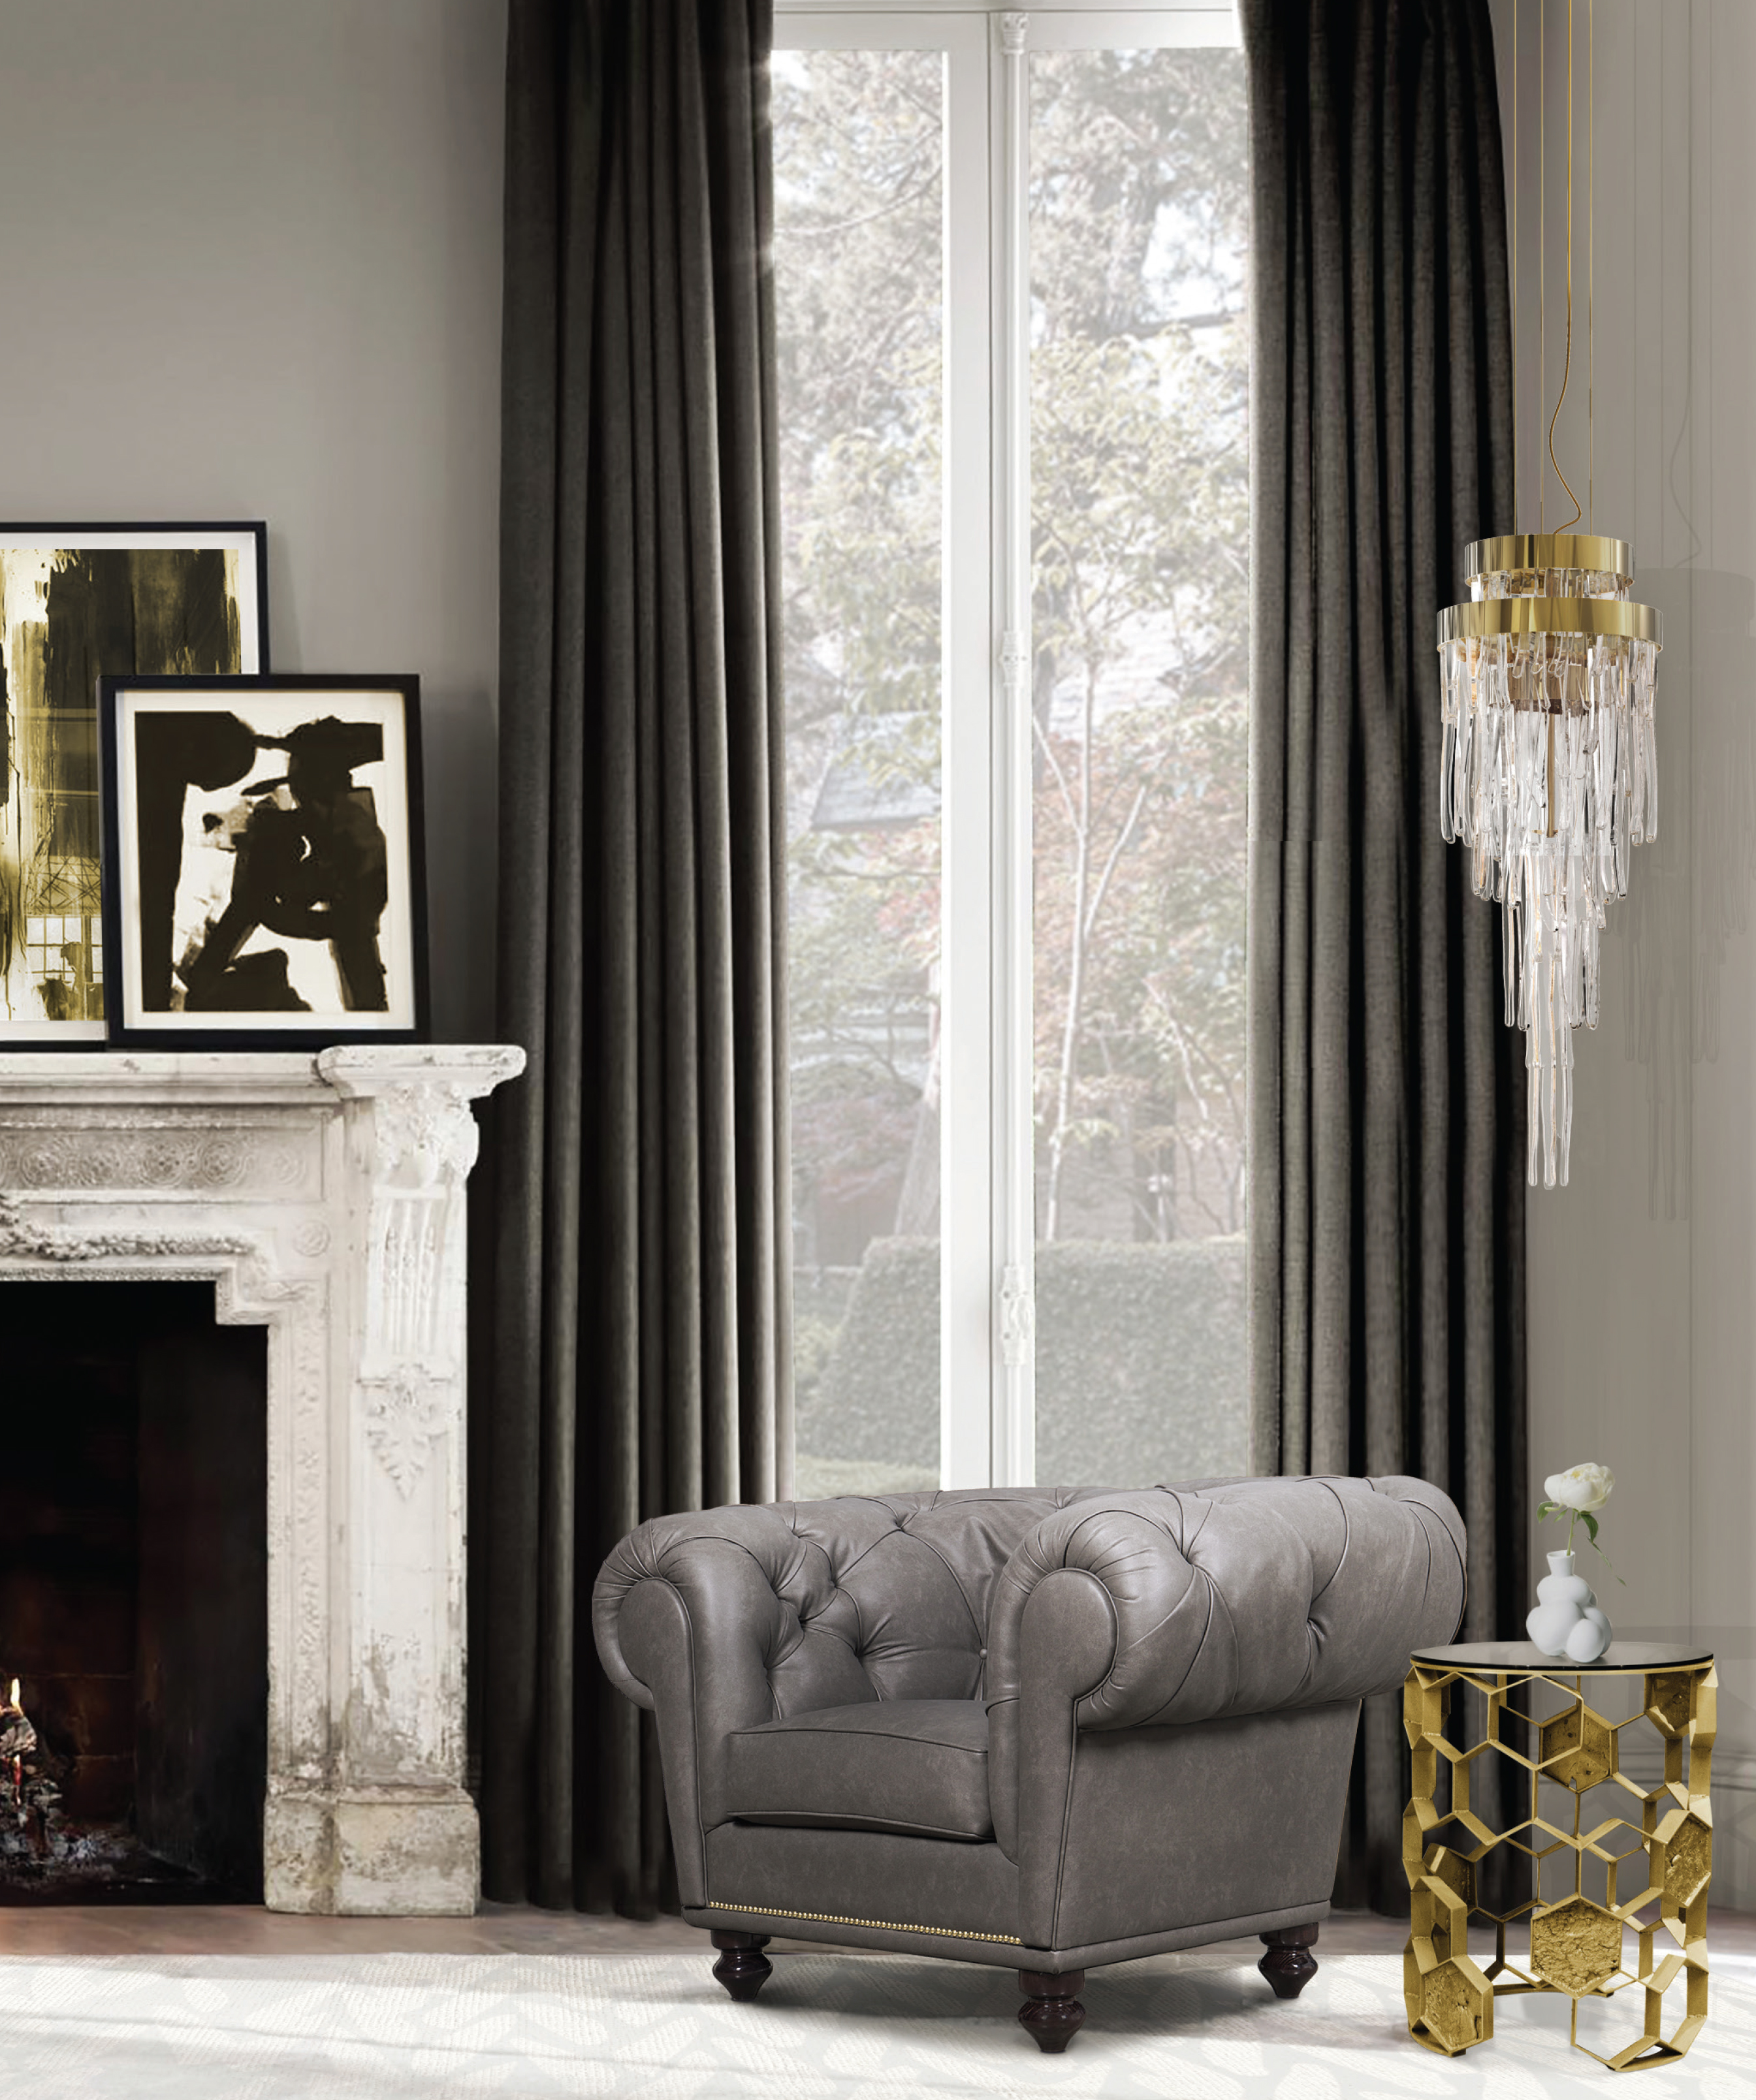 modern classic living room. undefined DESIGN INSPIRATION FOR THE LUXURIOUS MODERN CLASSIC LIVING ROOM